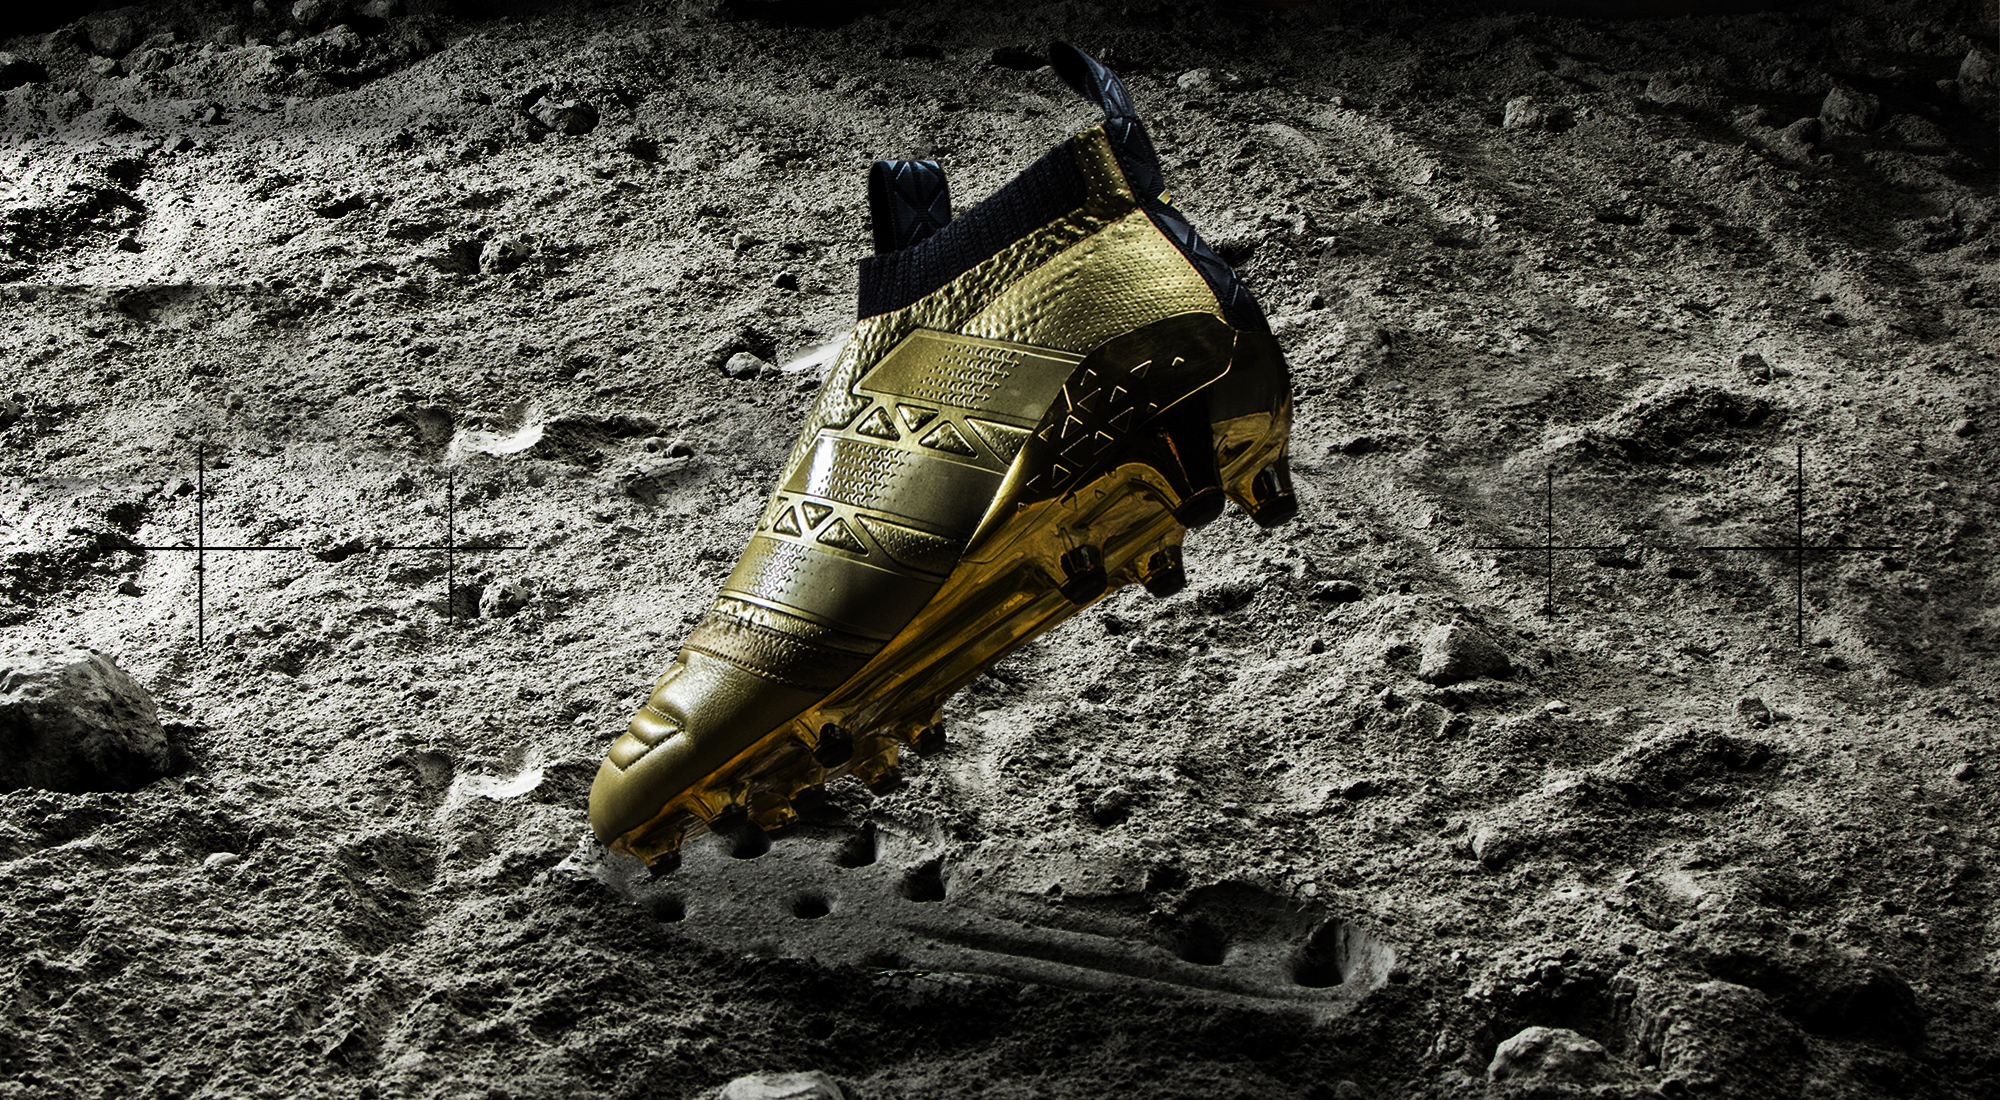 f6561dc71 Adidas Space Craft Pack: oro e pelle